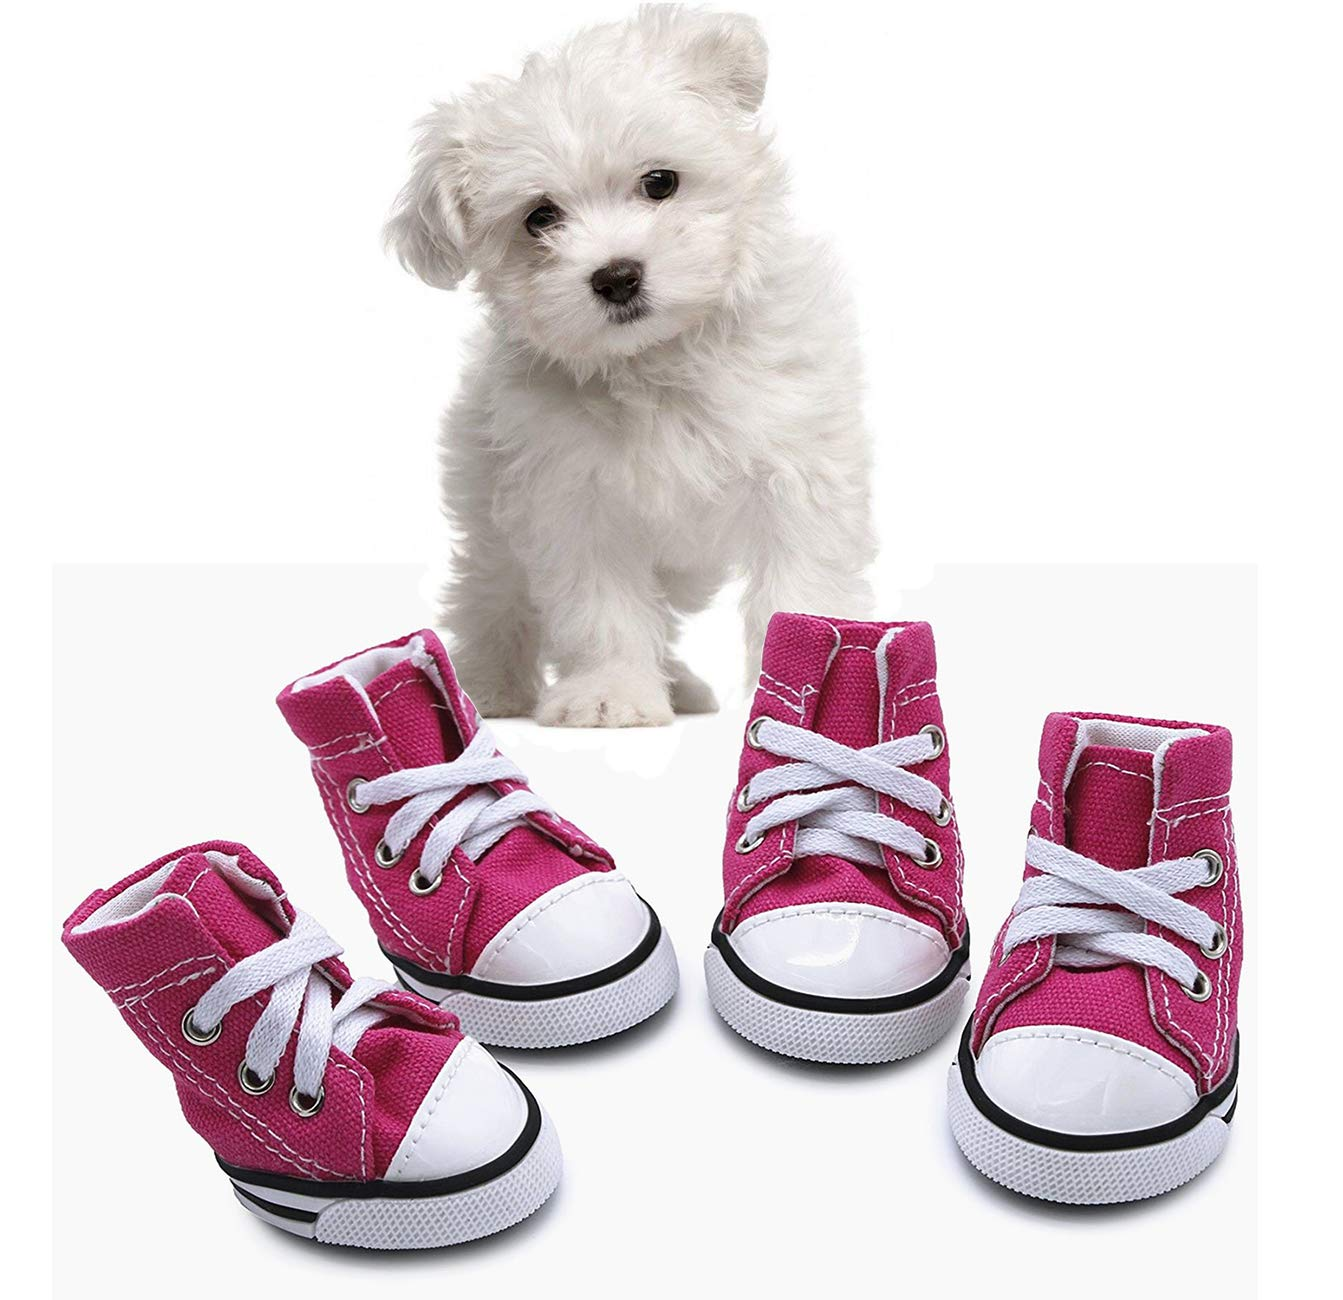 abcGoodefg Pet Dog Puppy Canvas Sport Shoes Sneaker Boots, Outdoor Nonslip Causal Shoes, Rubber Sole+Soft Cotton Inner Fabric (#5(1.892.36), Pink)